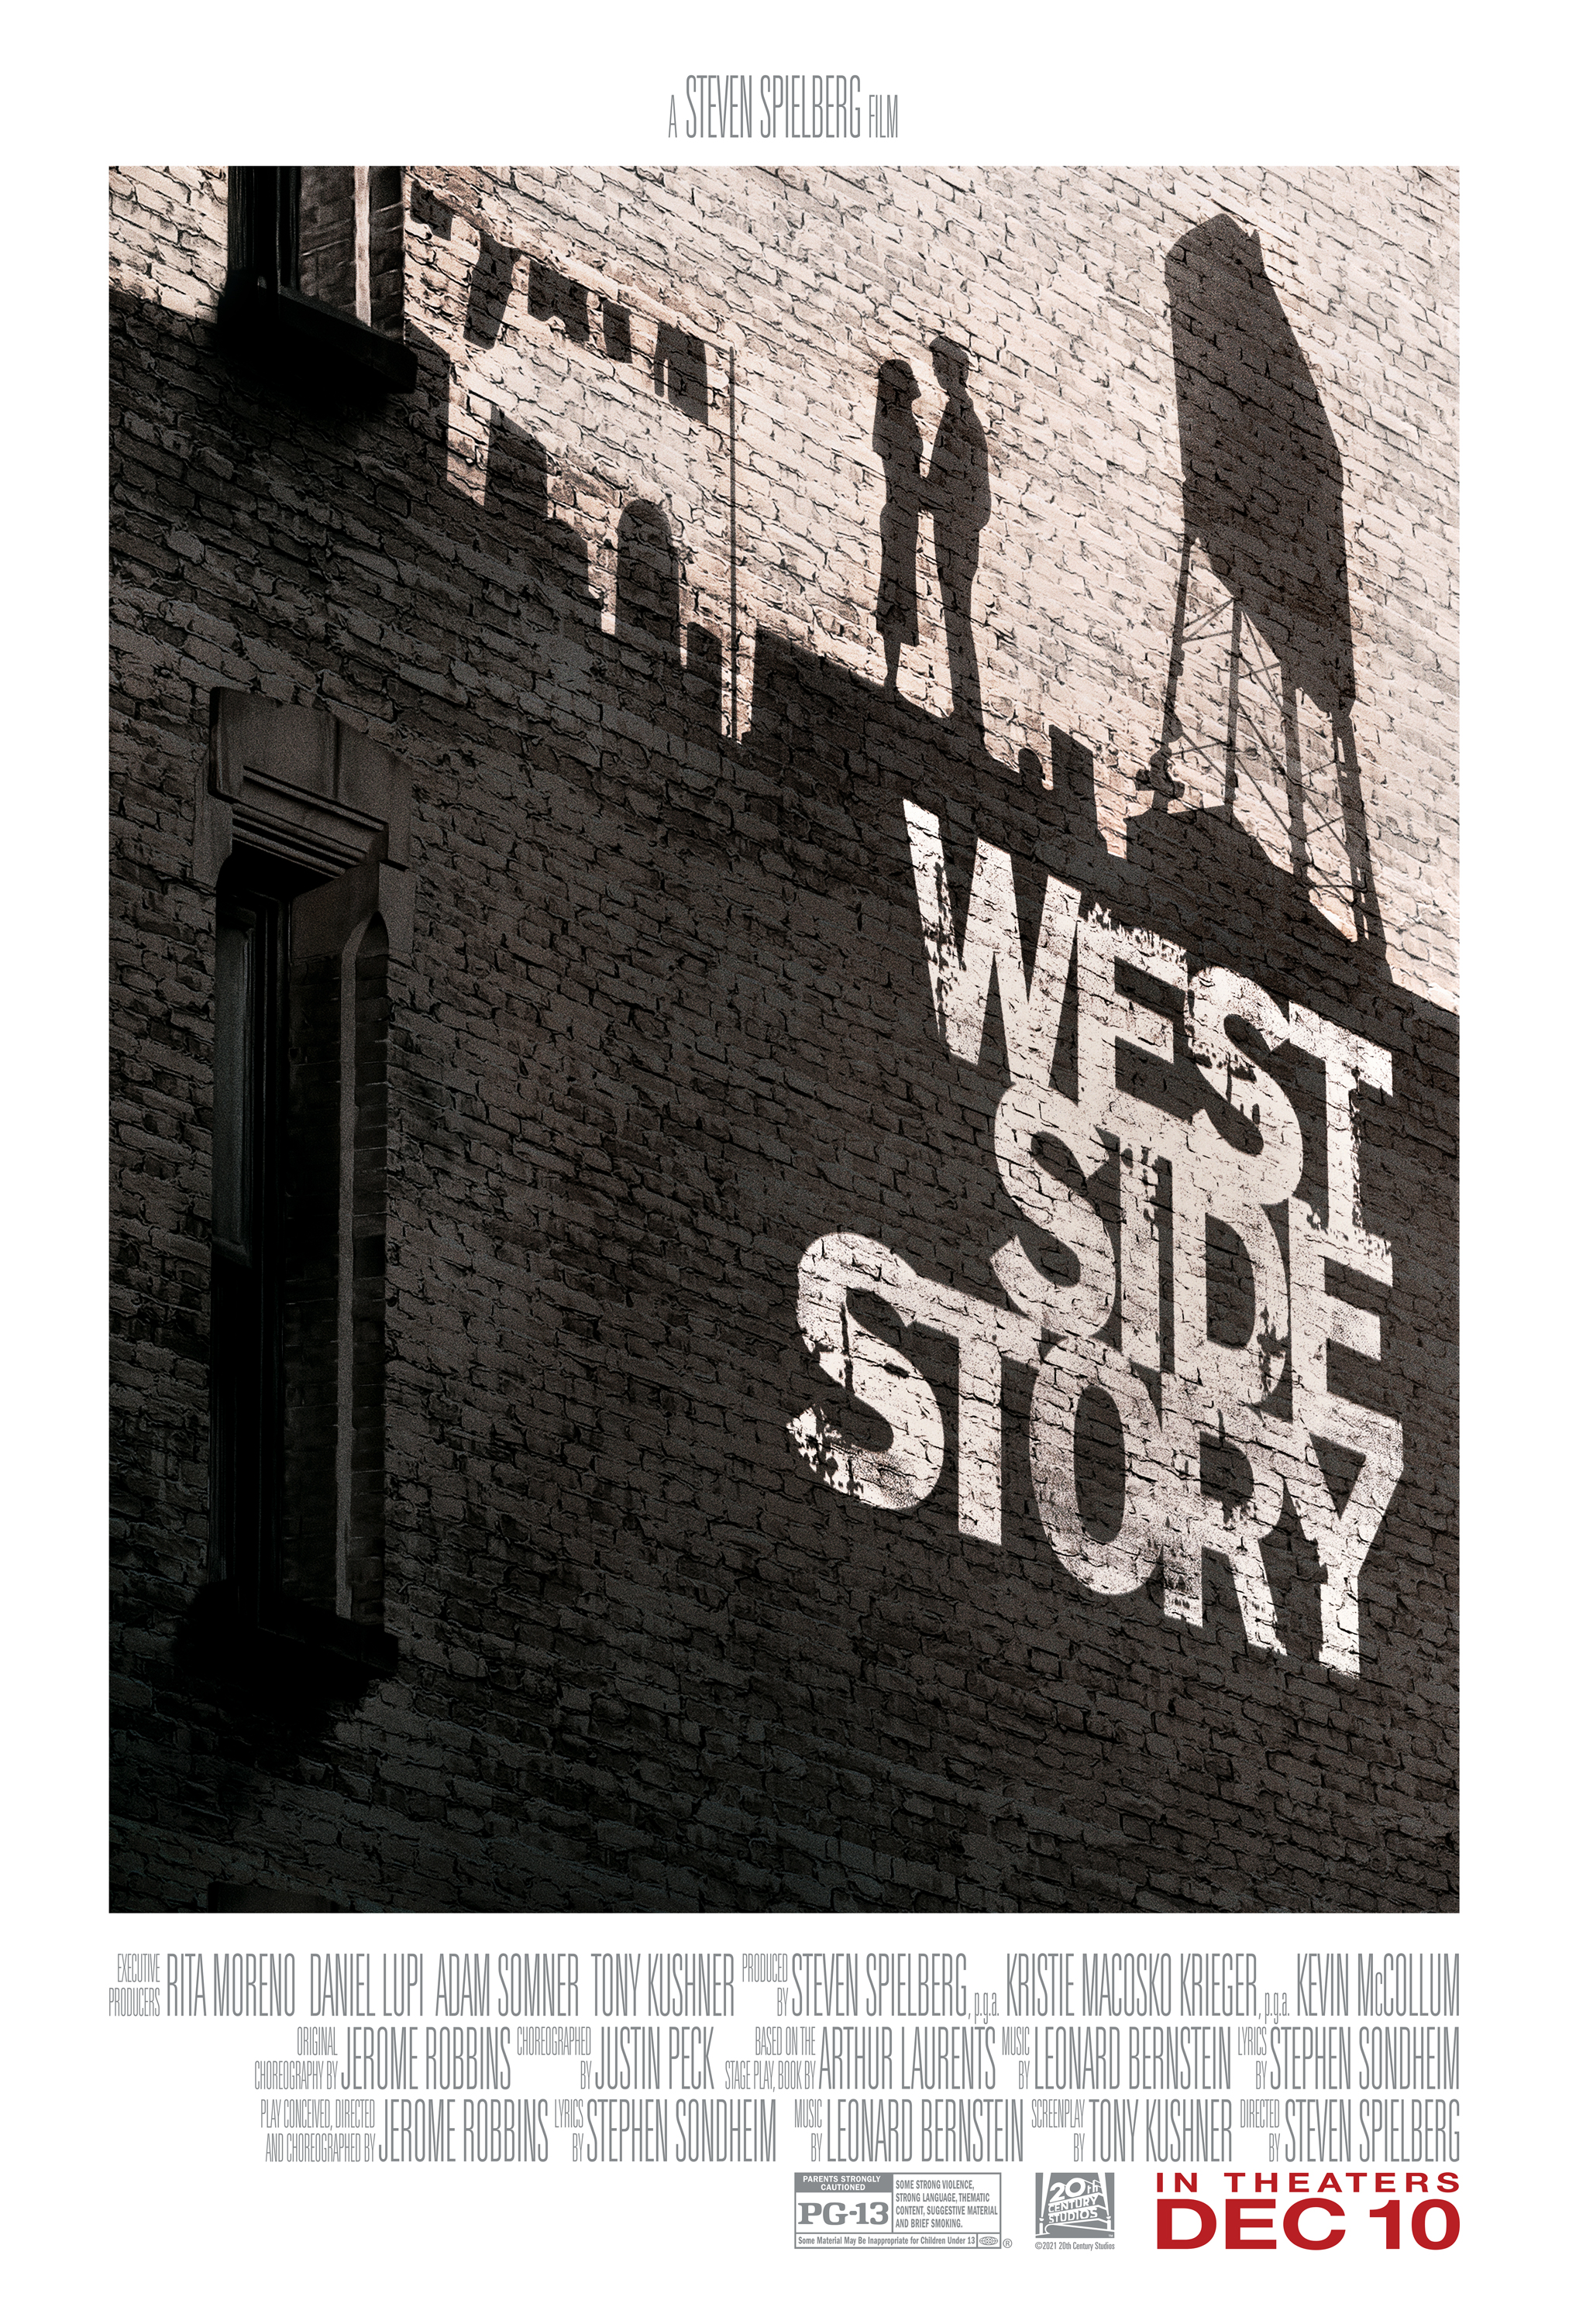 New Trailer, Poster and Stills for Steven Spielberg's 'West Side Story' - Image 1